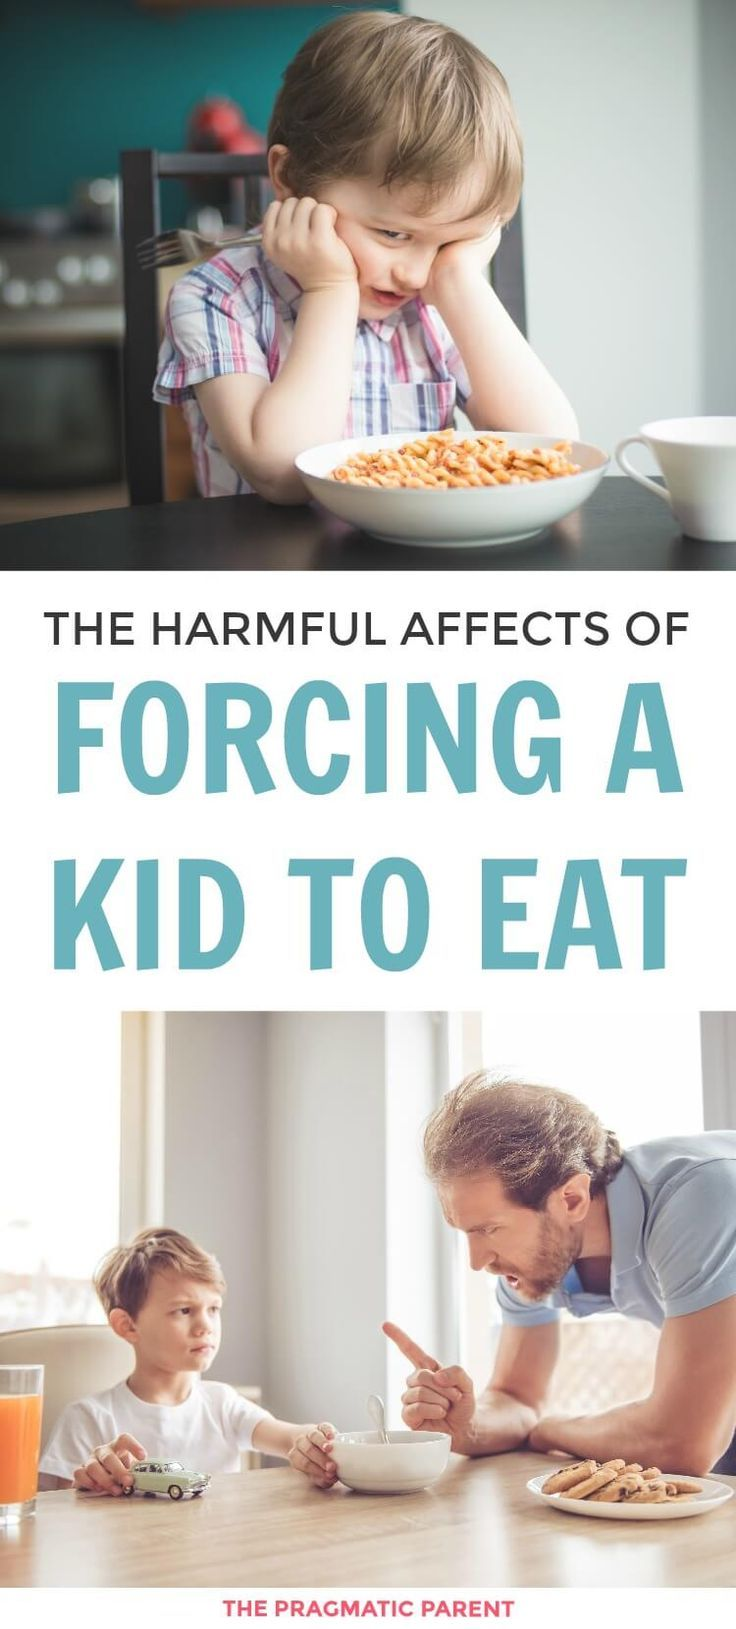 Forcing kids to eat has longterm effects, especially forcing kids to eat food they don't like.